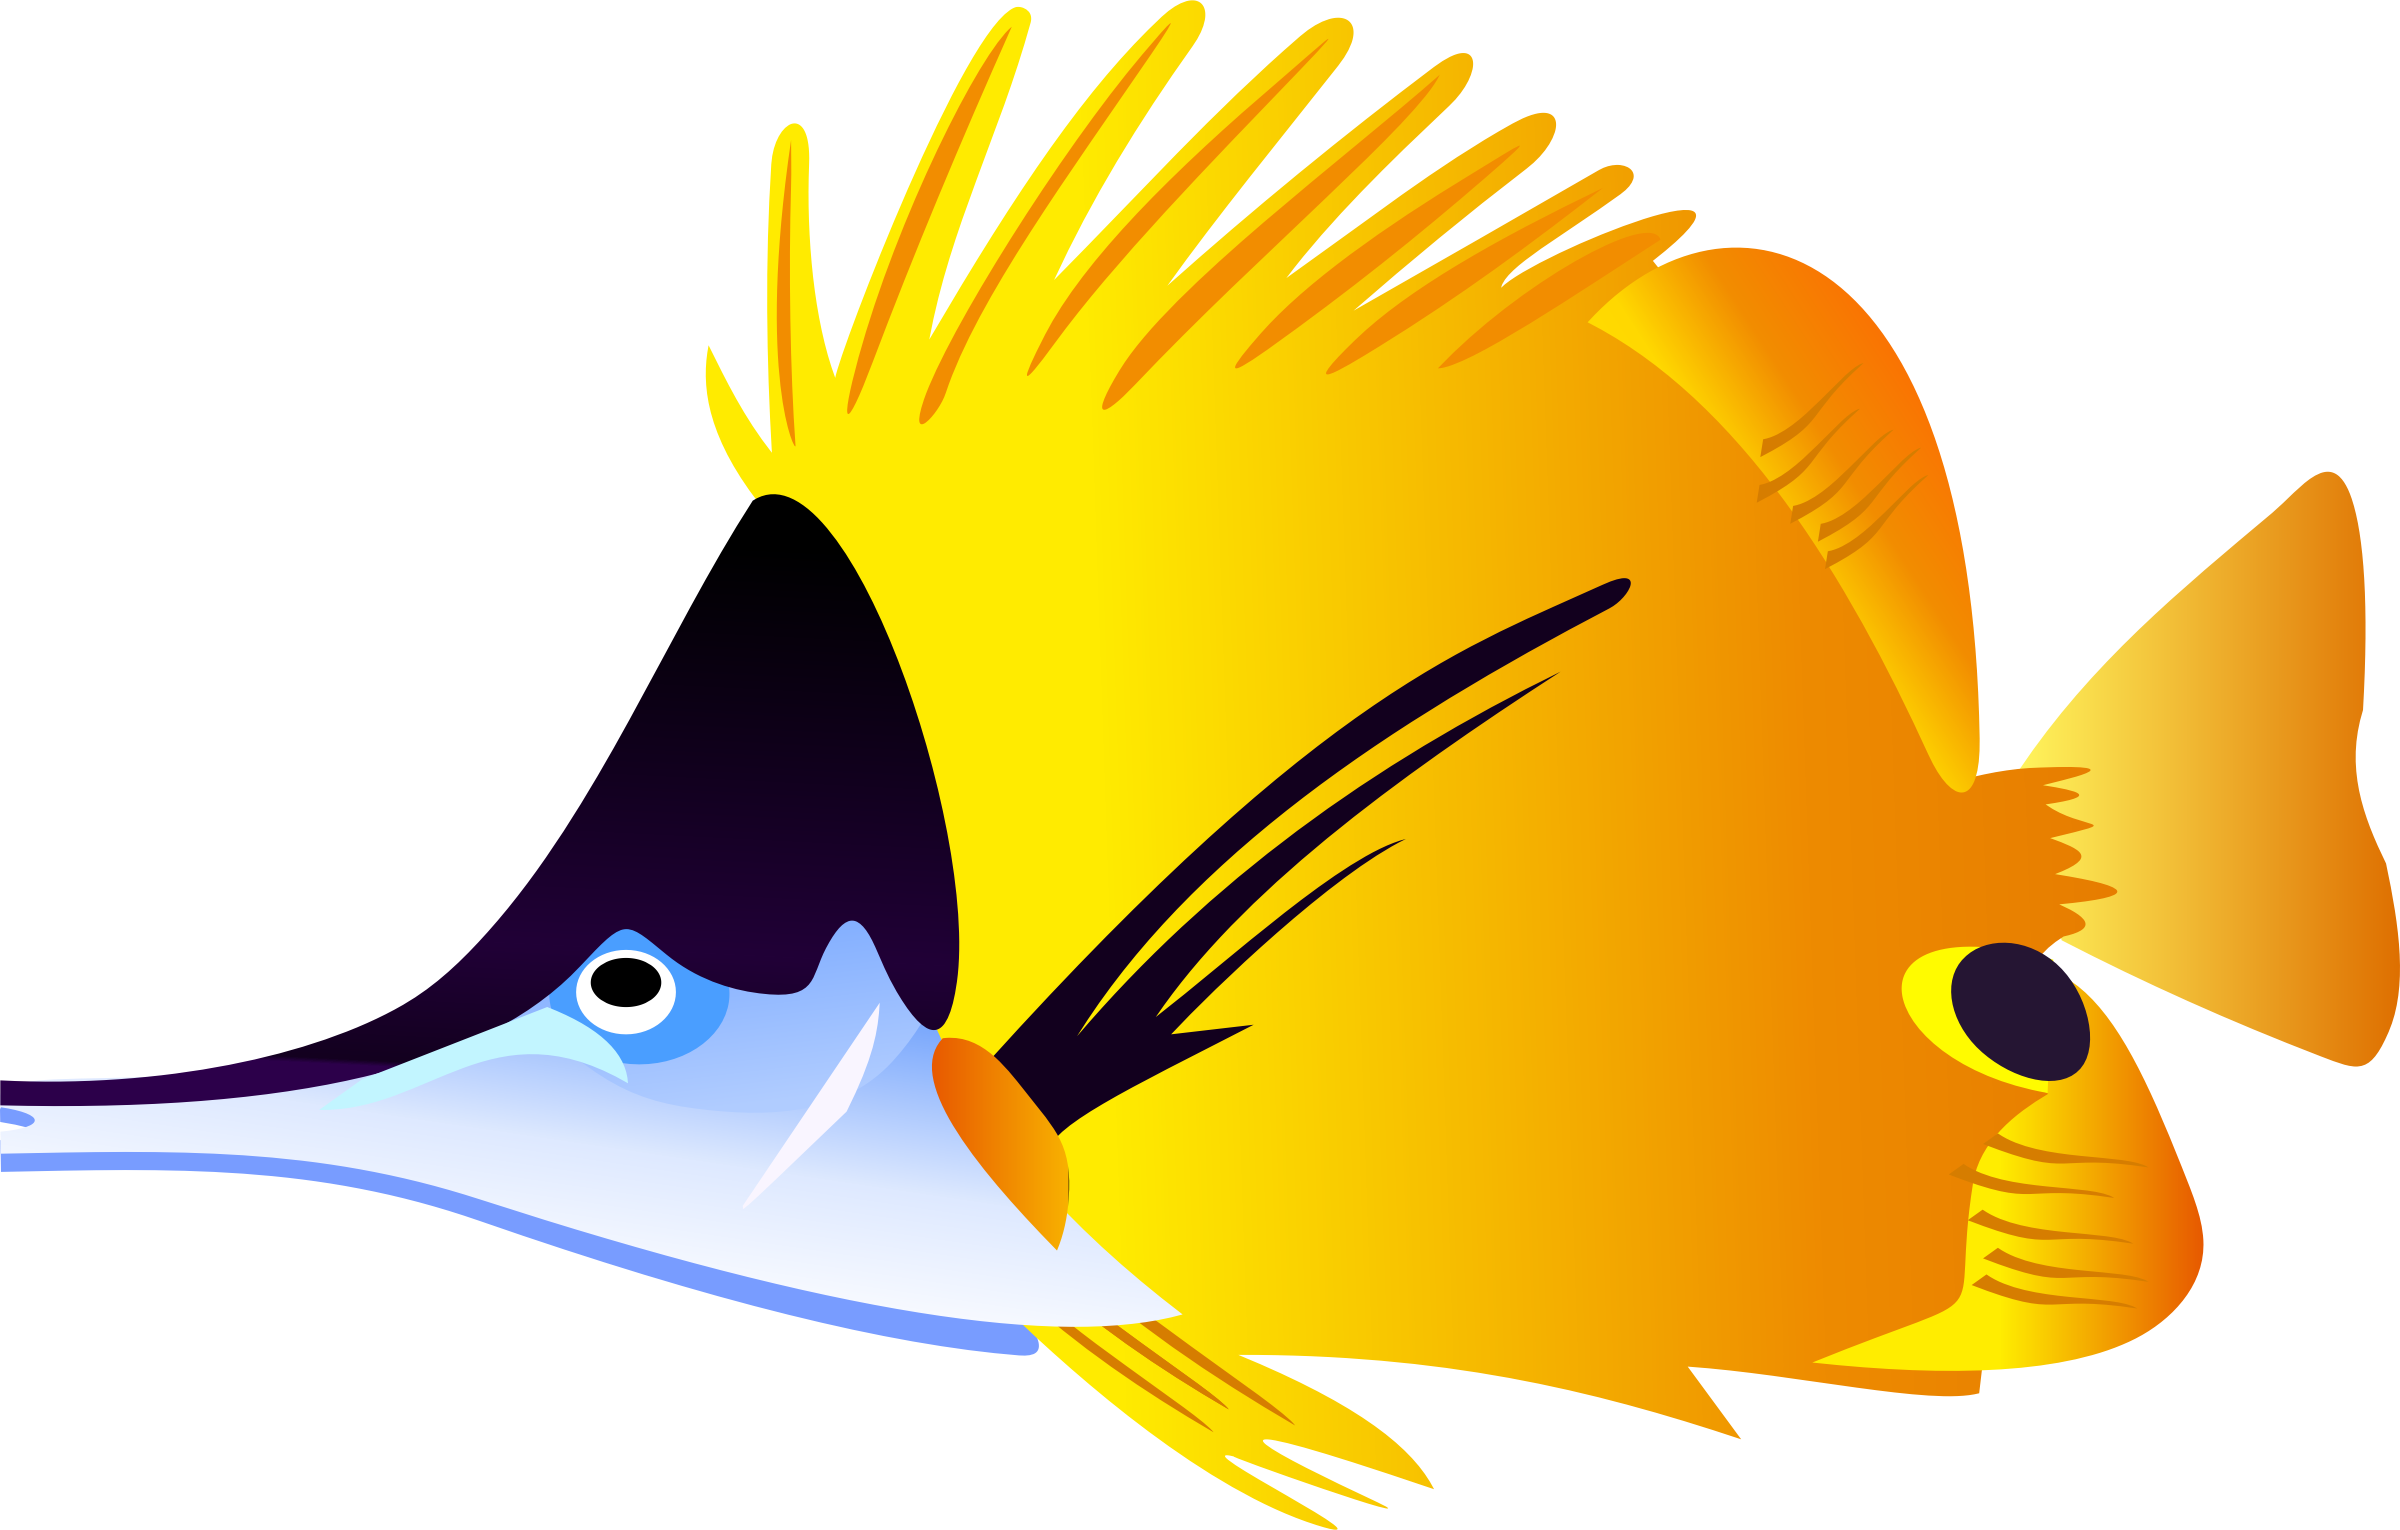 2 fish clipart vector transparent library Saltwater Fish Clipart at GetDrawings.com | Free for personal use ... vector transparent library